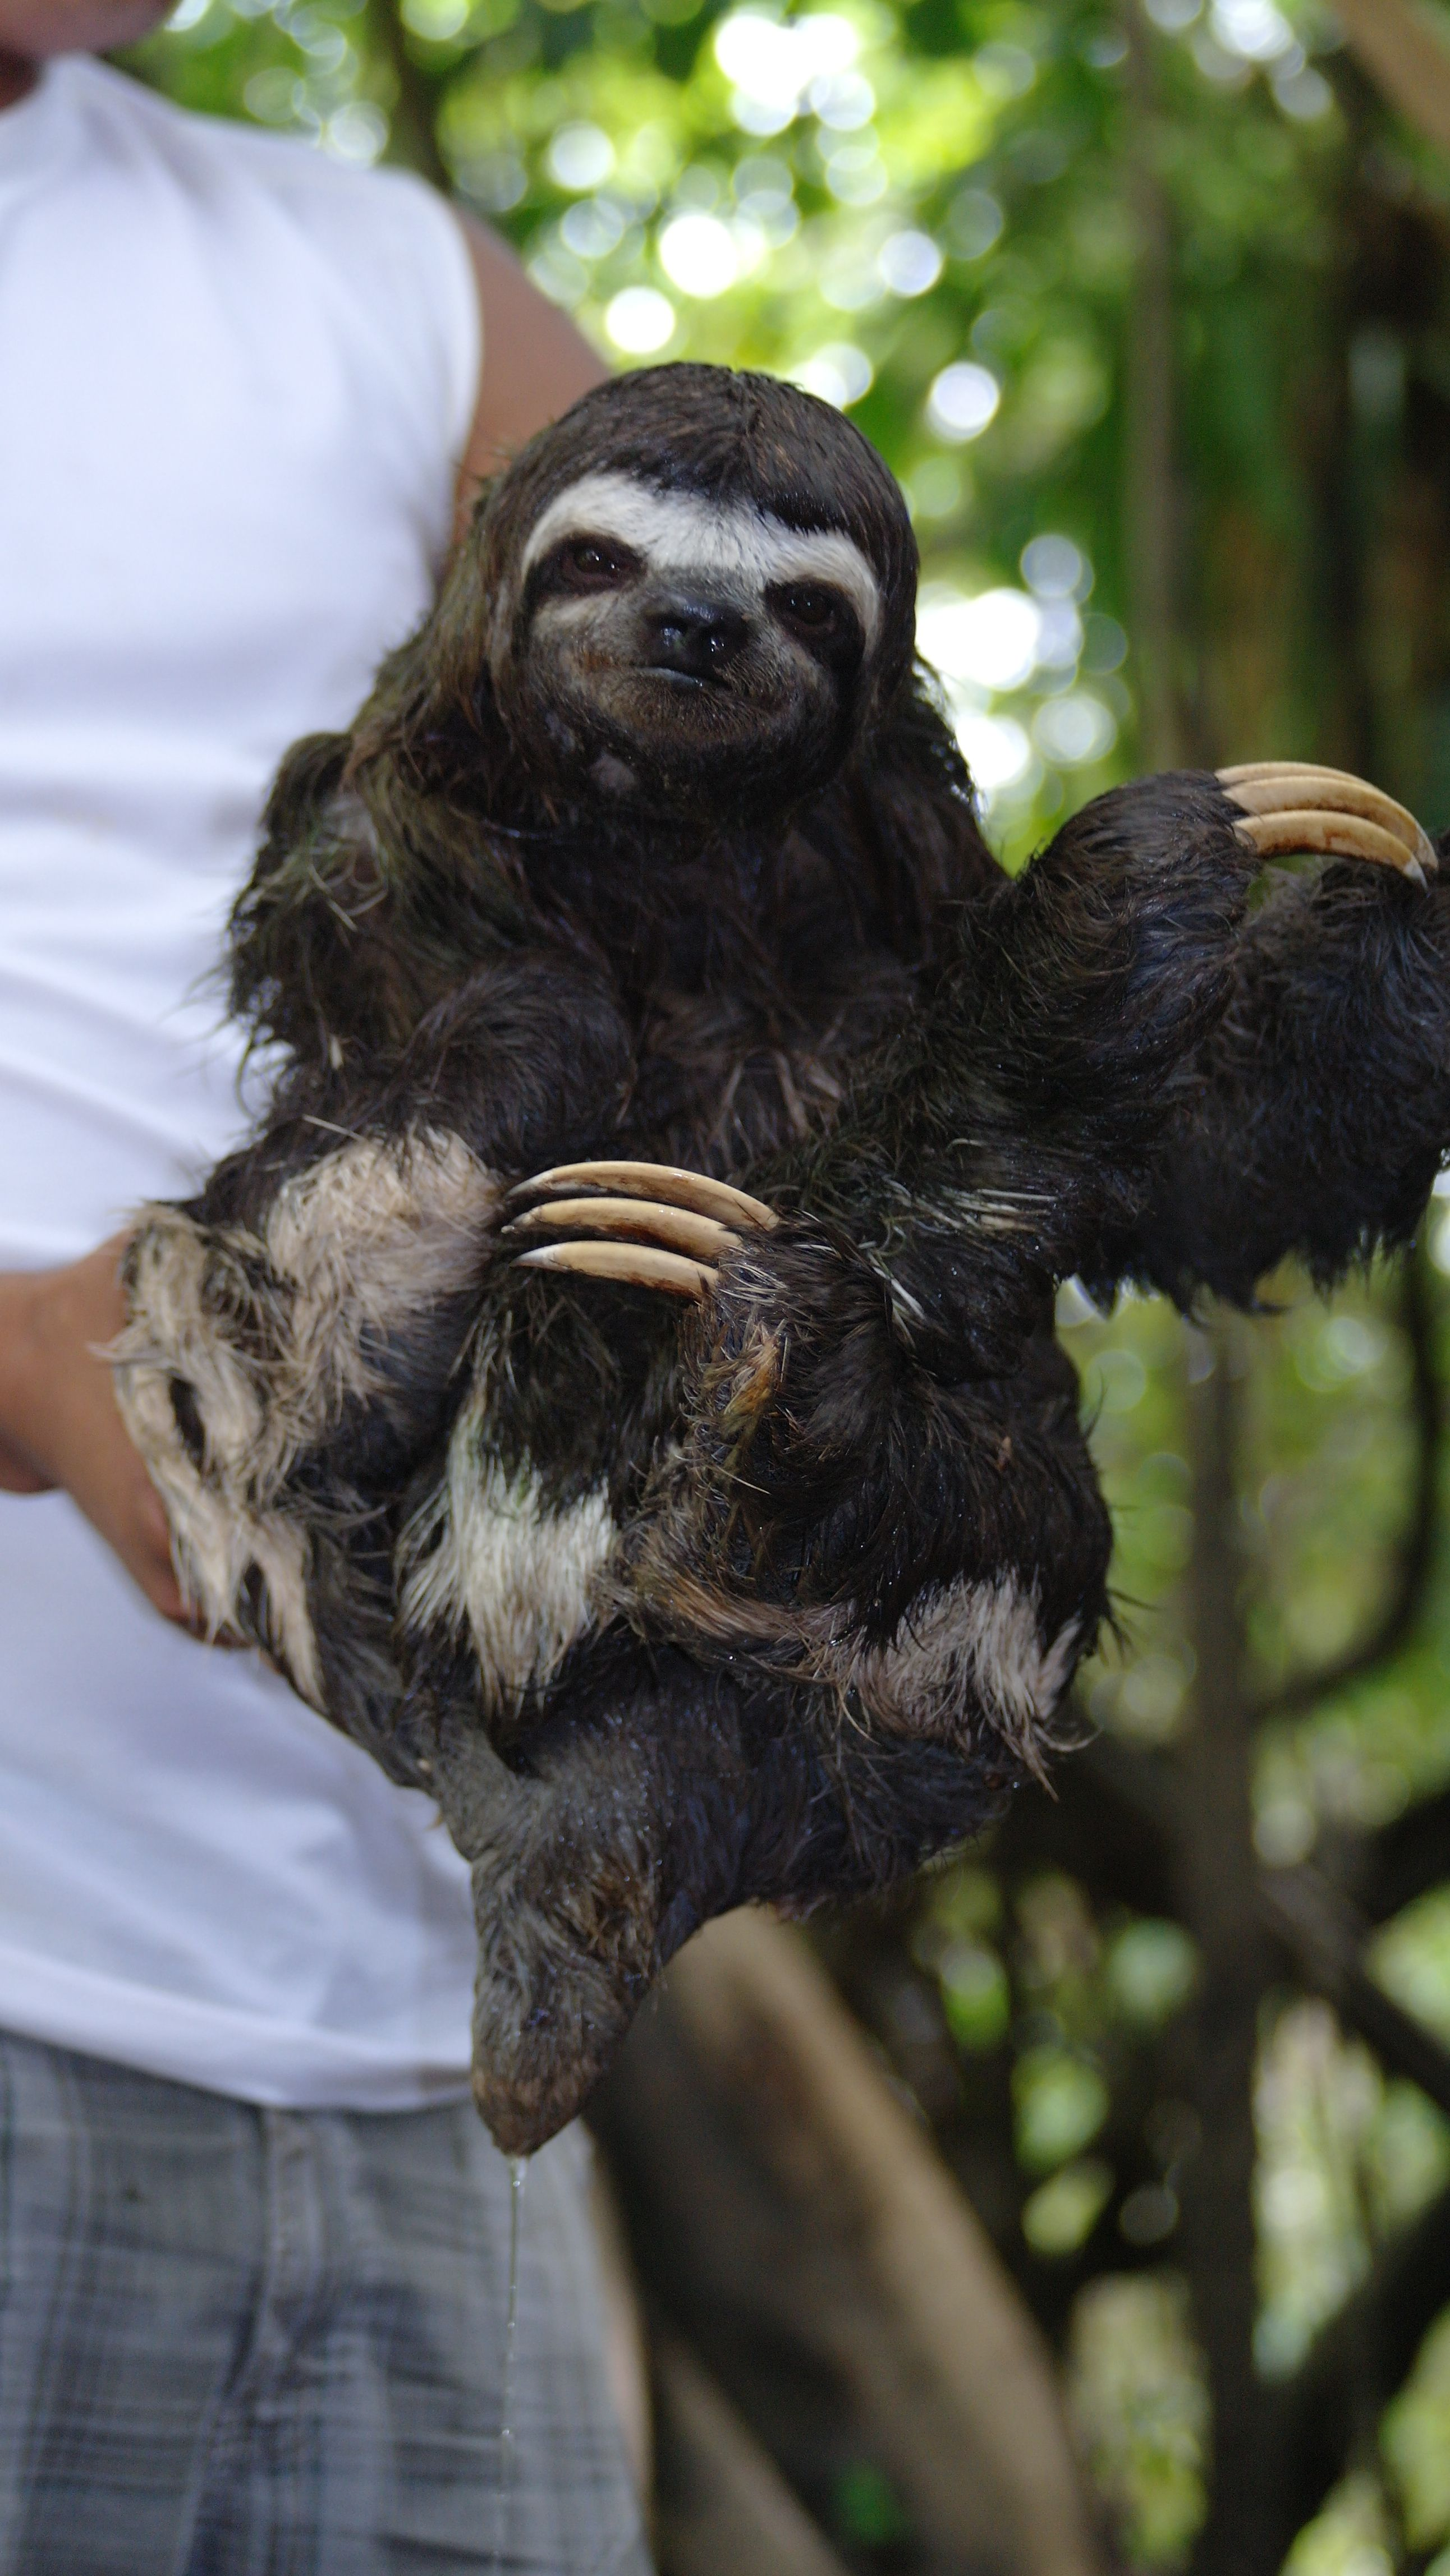 we found this sloth in our jungle expedition in Iquitos Peru